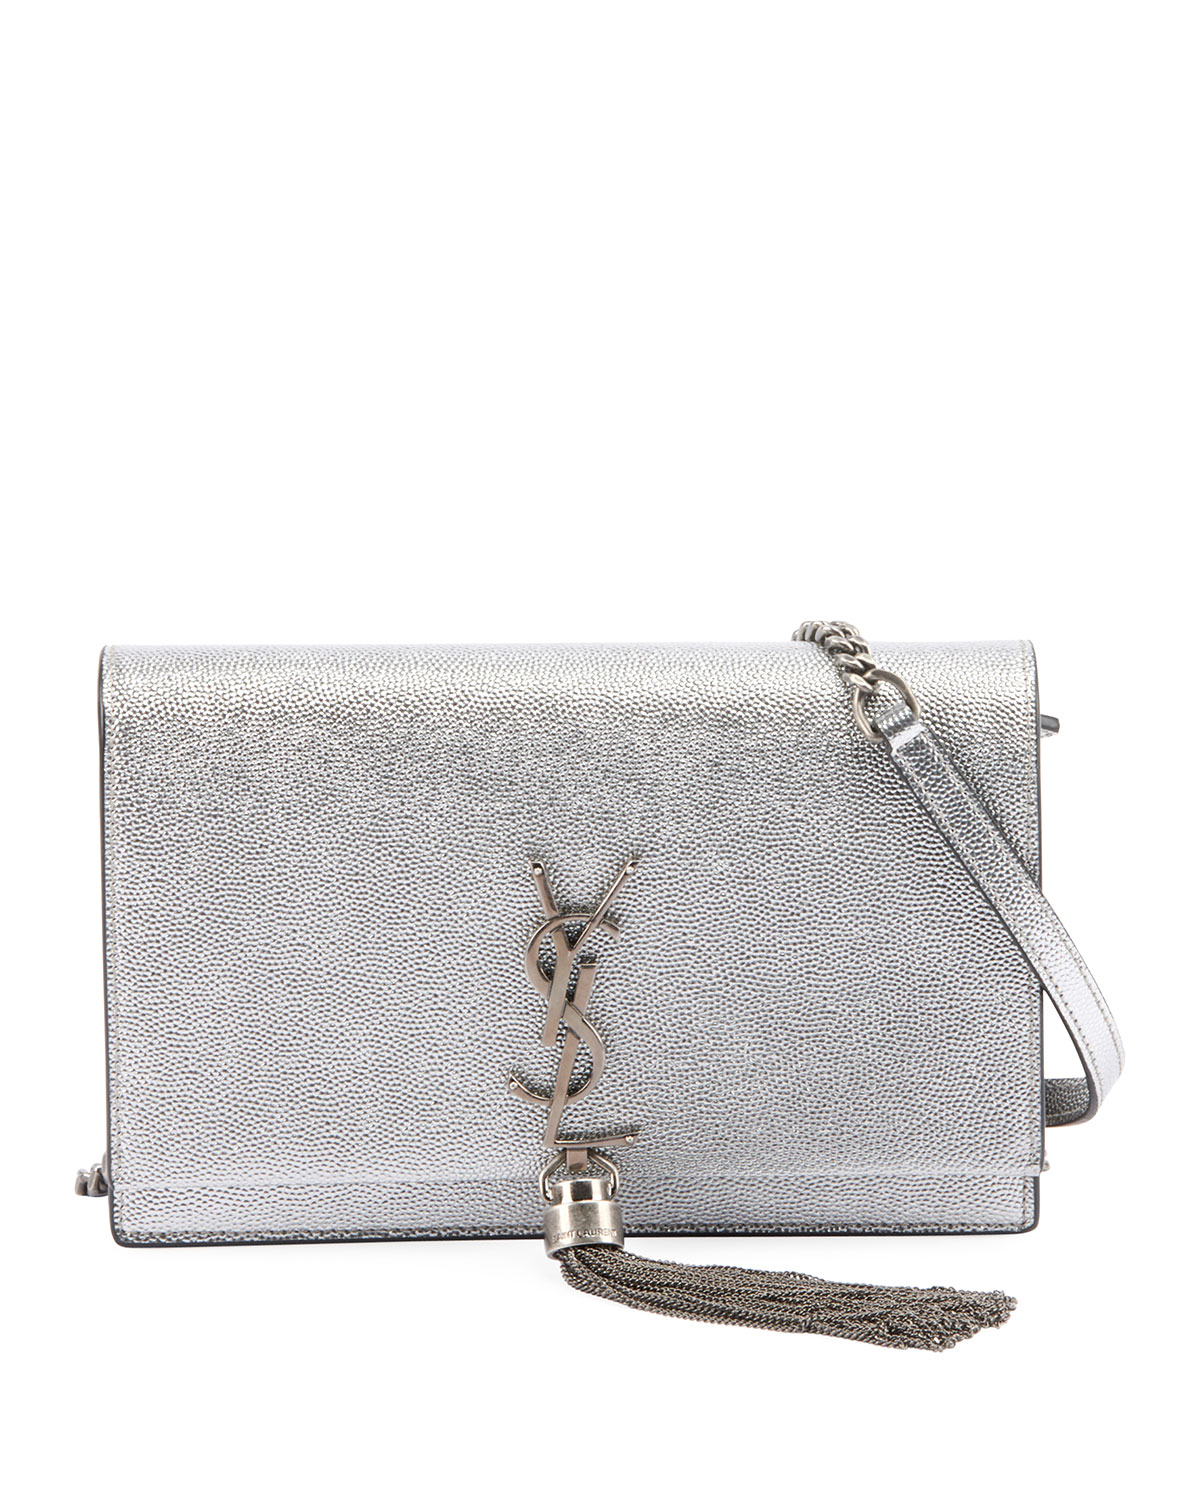 Saint LaurentKate Monogram YSL Small Crackled Metallic Tassel Wallet on  Chain - Silver Hardware 4c62ab90a8b7e